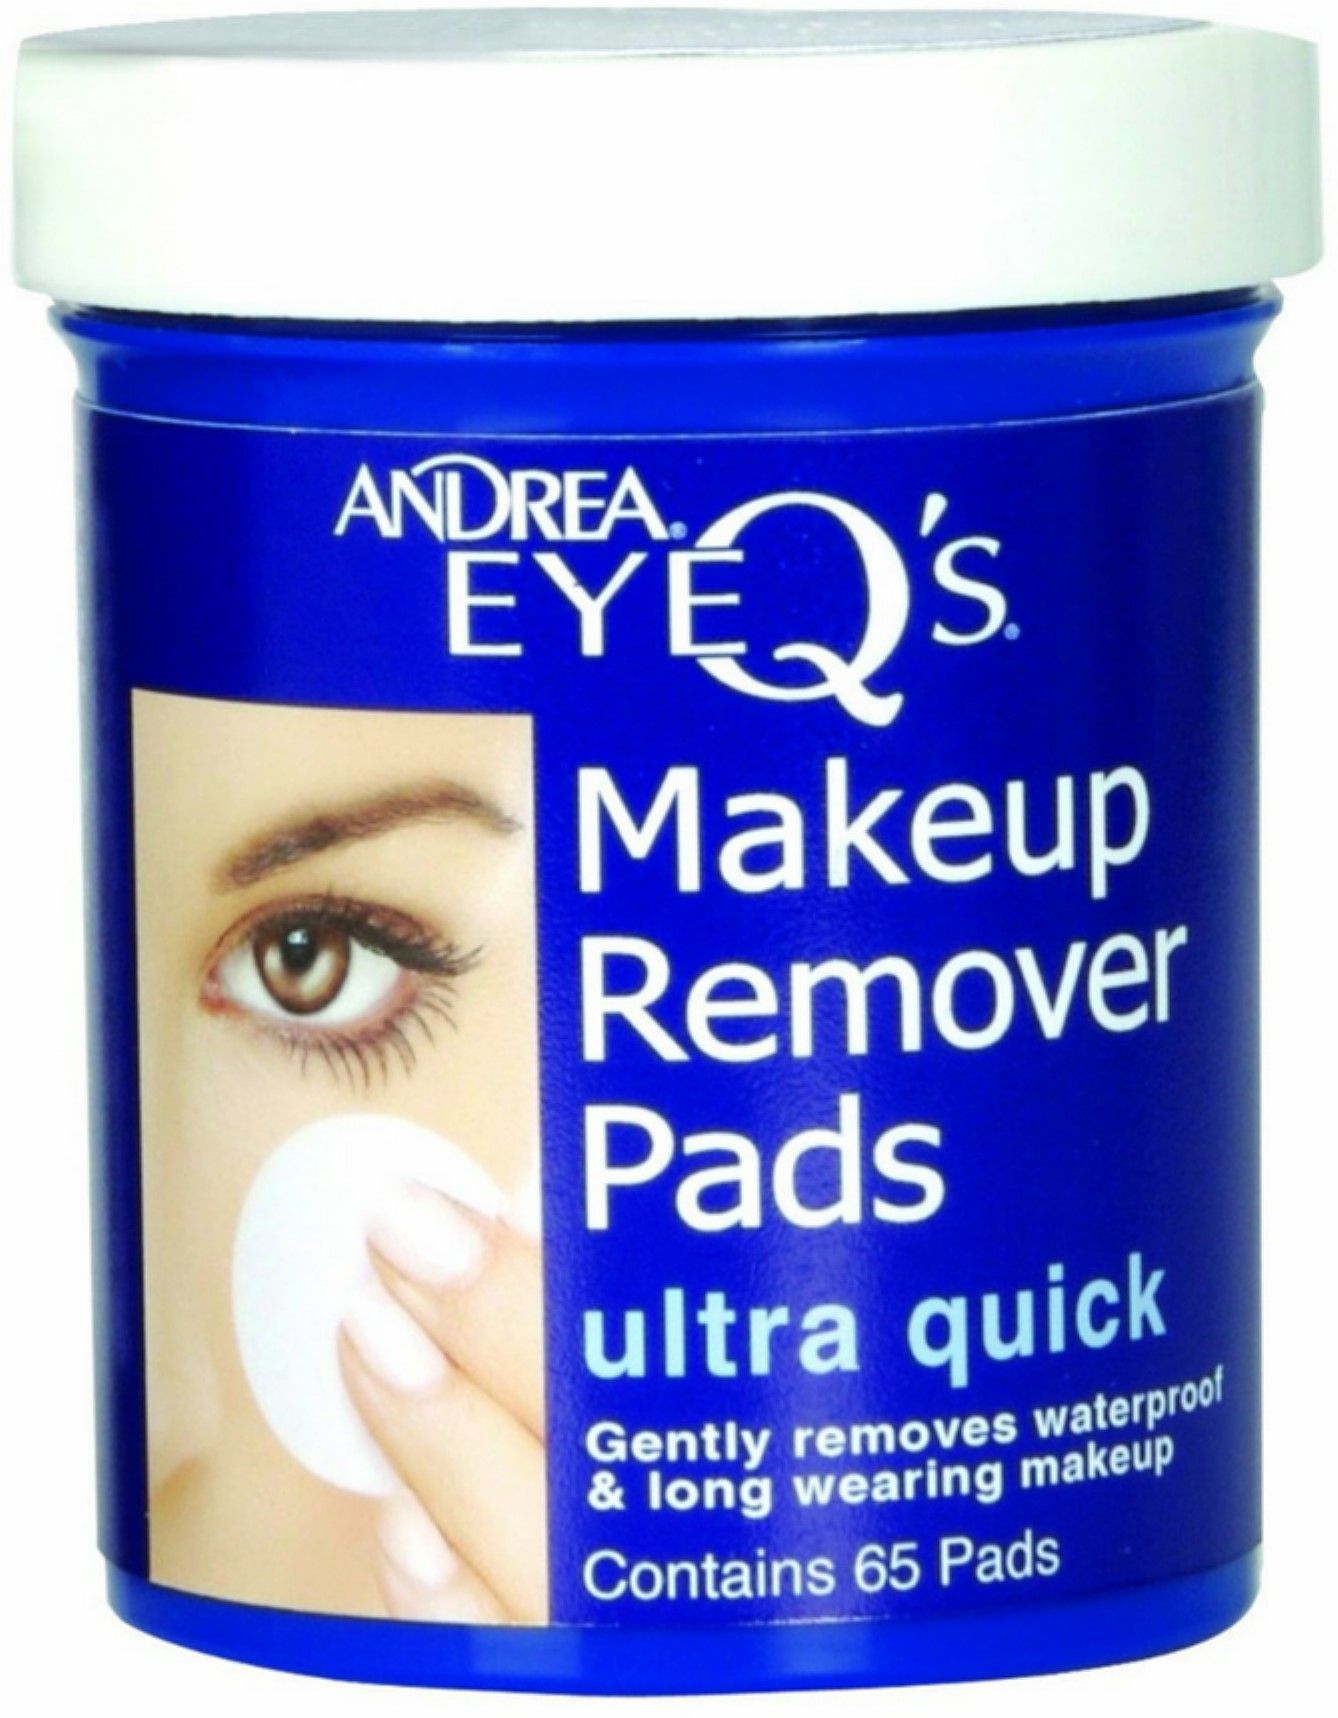 Andrea EyeQ Eye Makeup Remover Pads, 65 Ct ASAP Hydrocolloid Acne Patches | 120 Total Acne Pimple Patches | 20 Patches (6 Sheets) | Acne Treatment | Quest Skincare